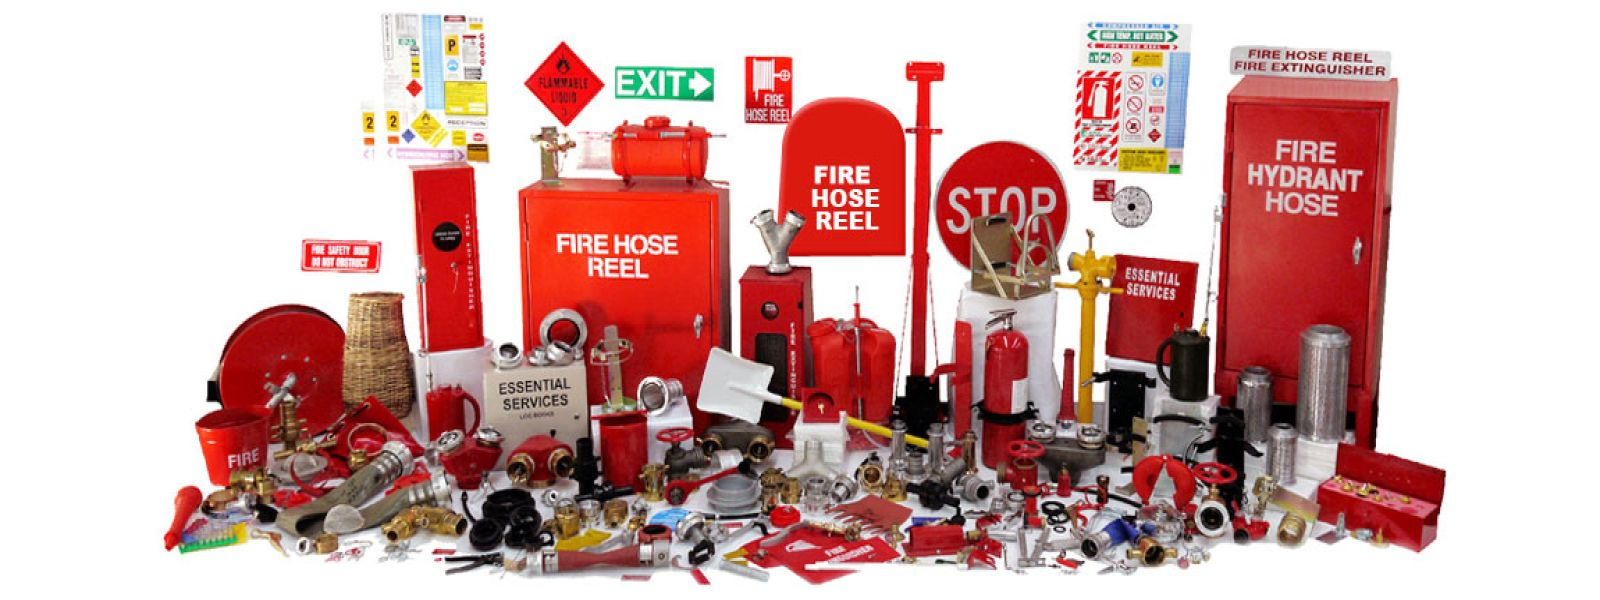 Fire Equipment and Fire Protection Services2